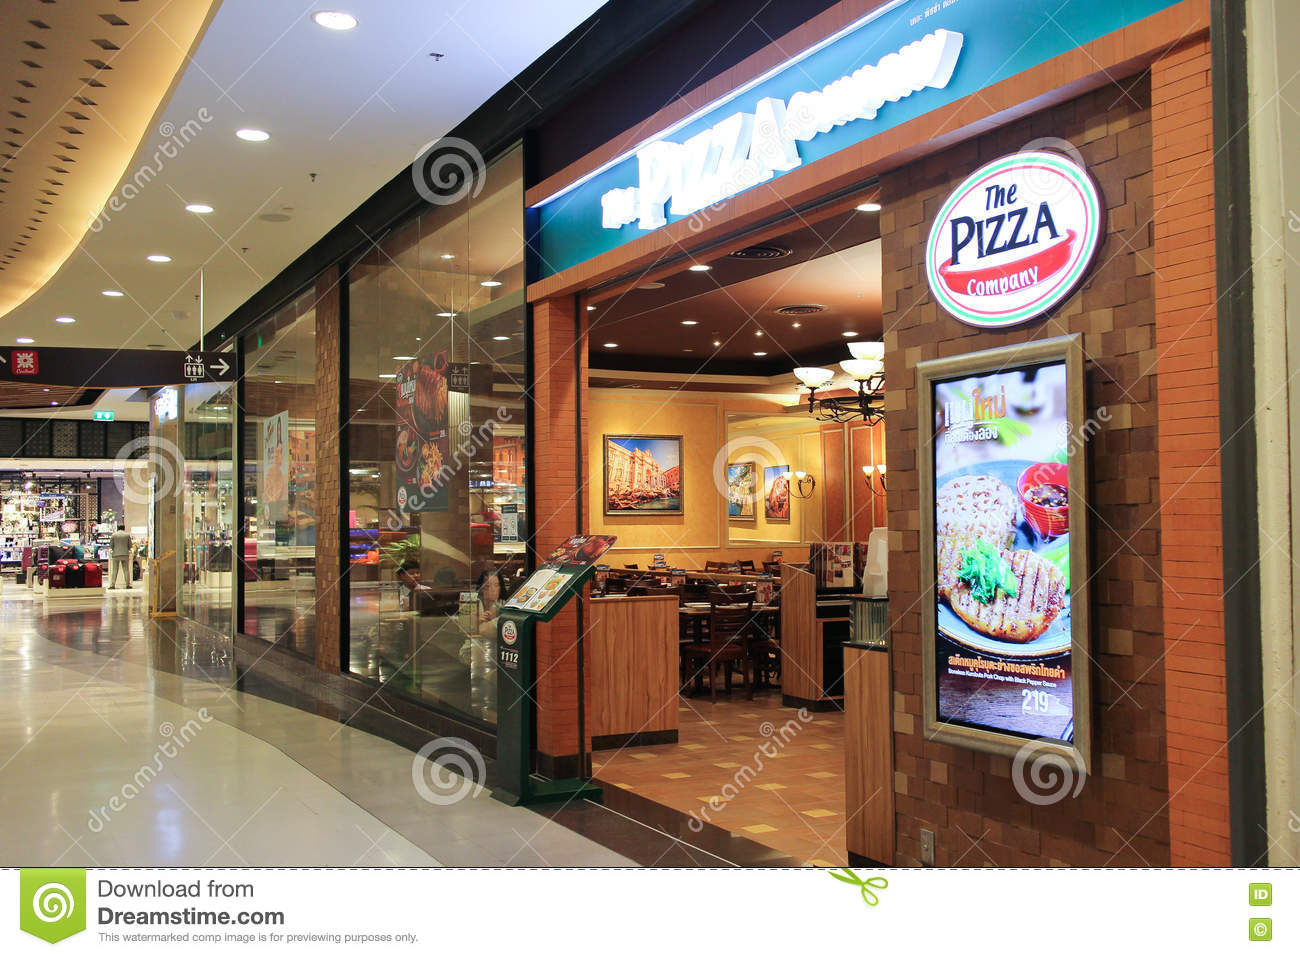 The Pizza Company Restaurant  Editorial Photo - Image of